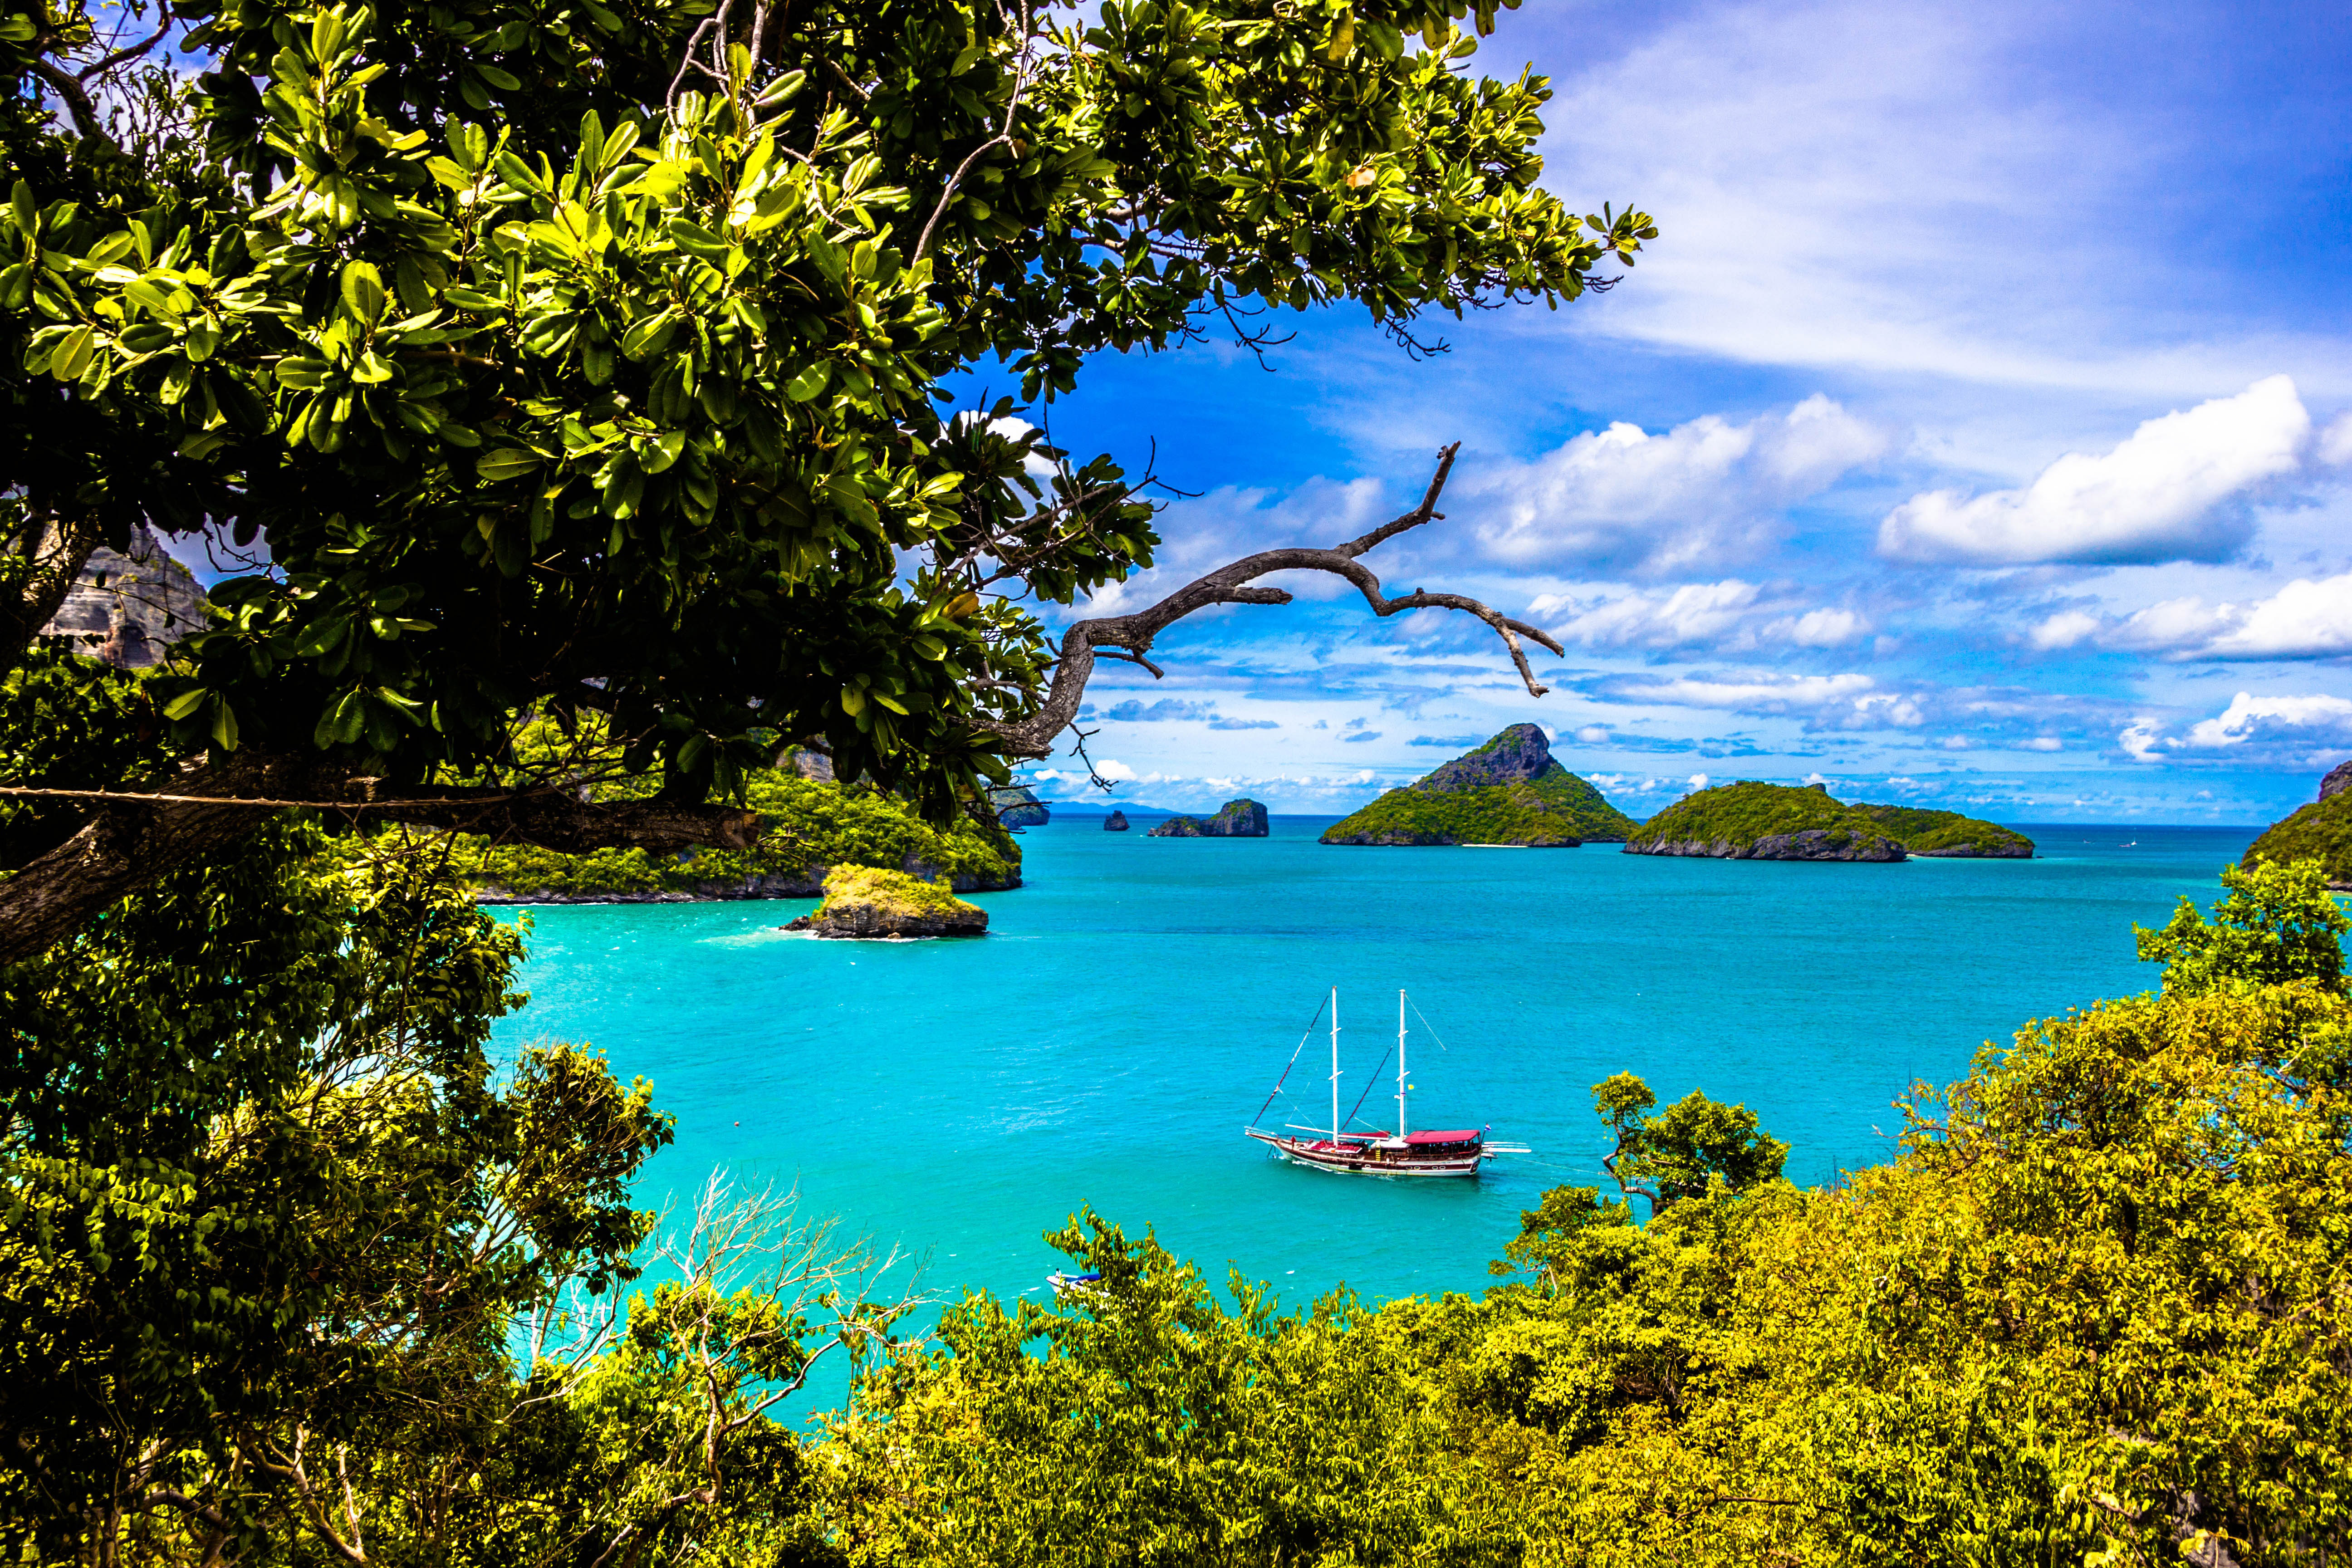 Beautiful water and ocean in Thailand image - Free stock